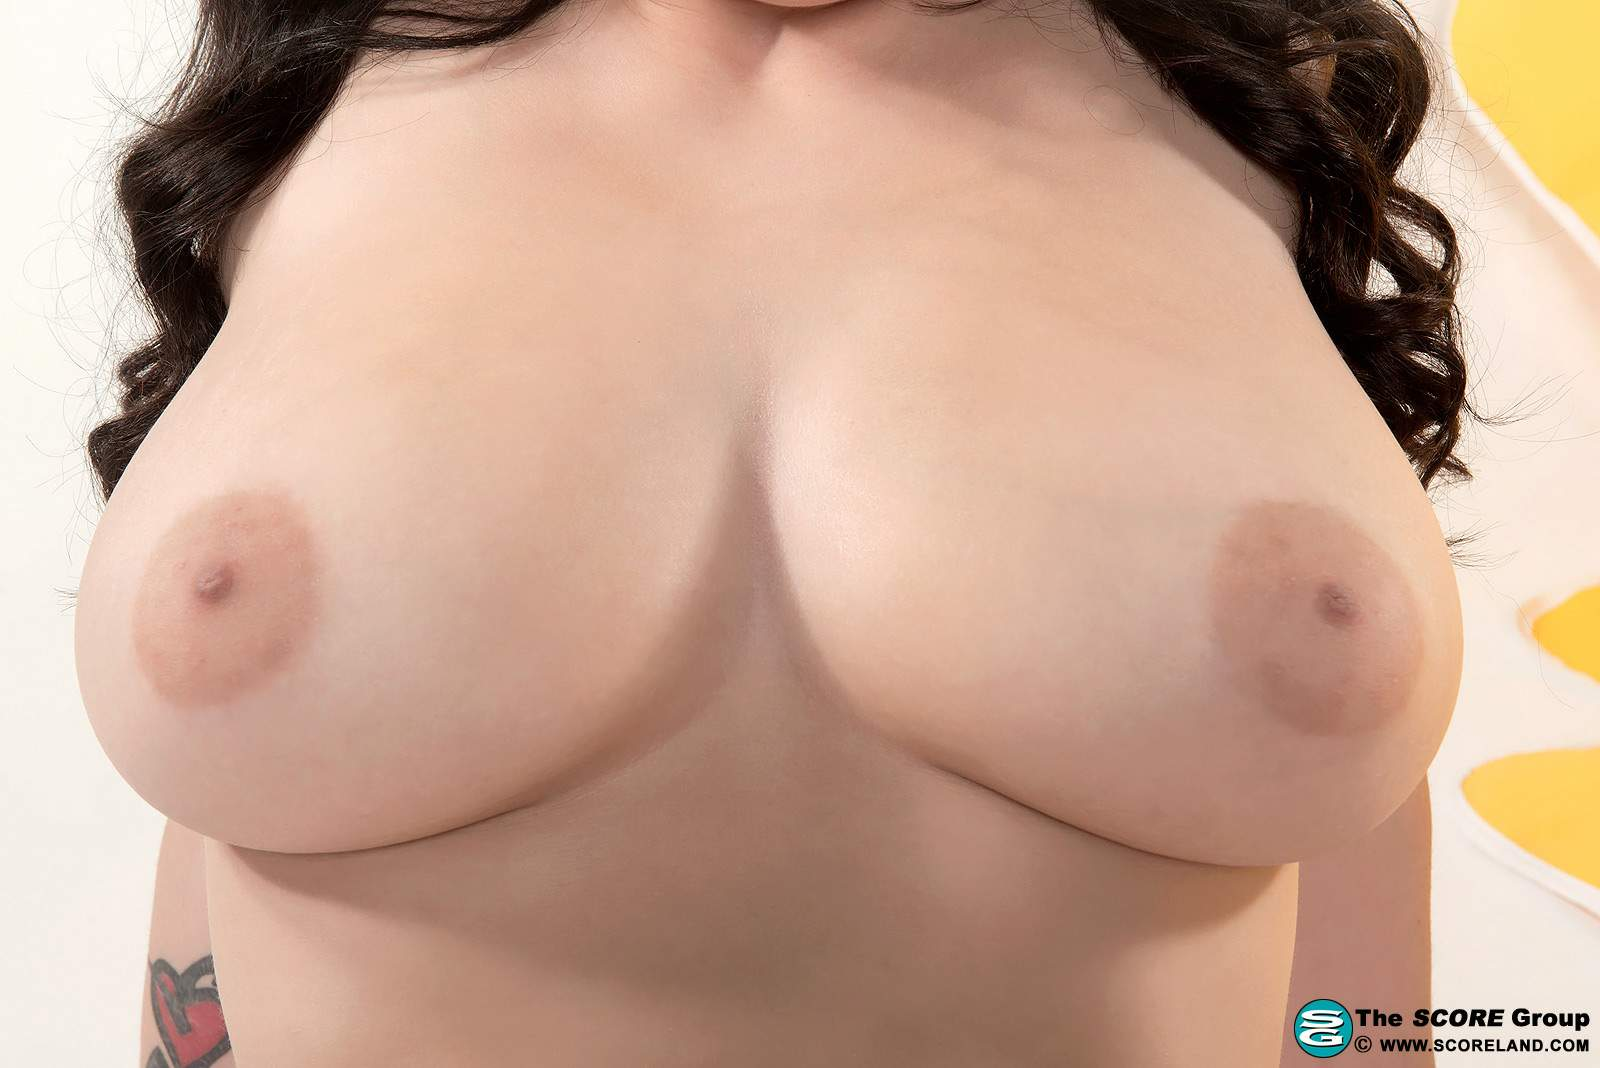 Big tits noelle easton thanks